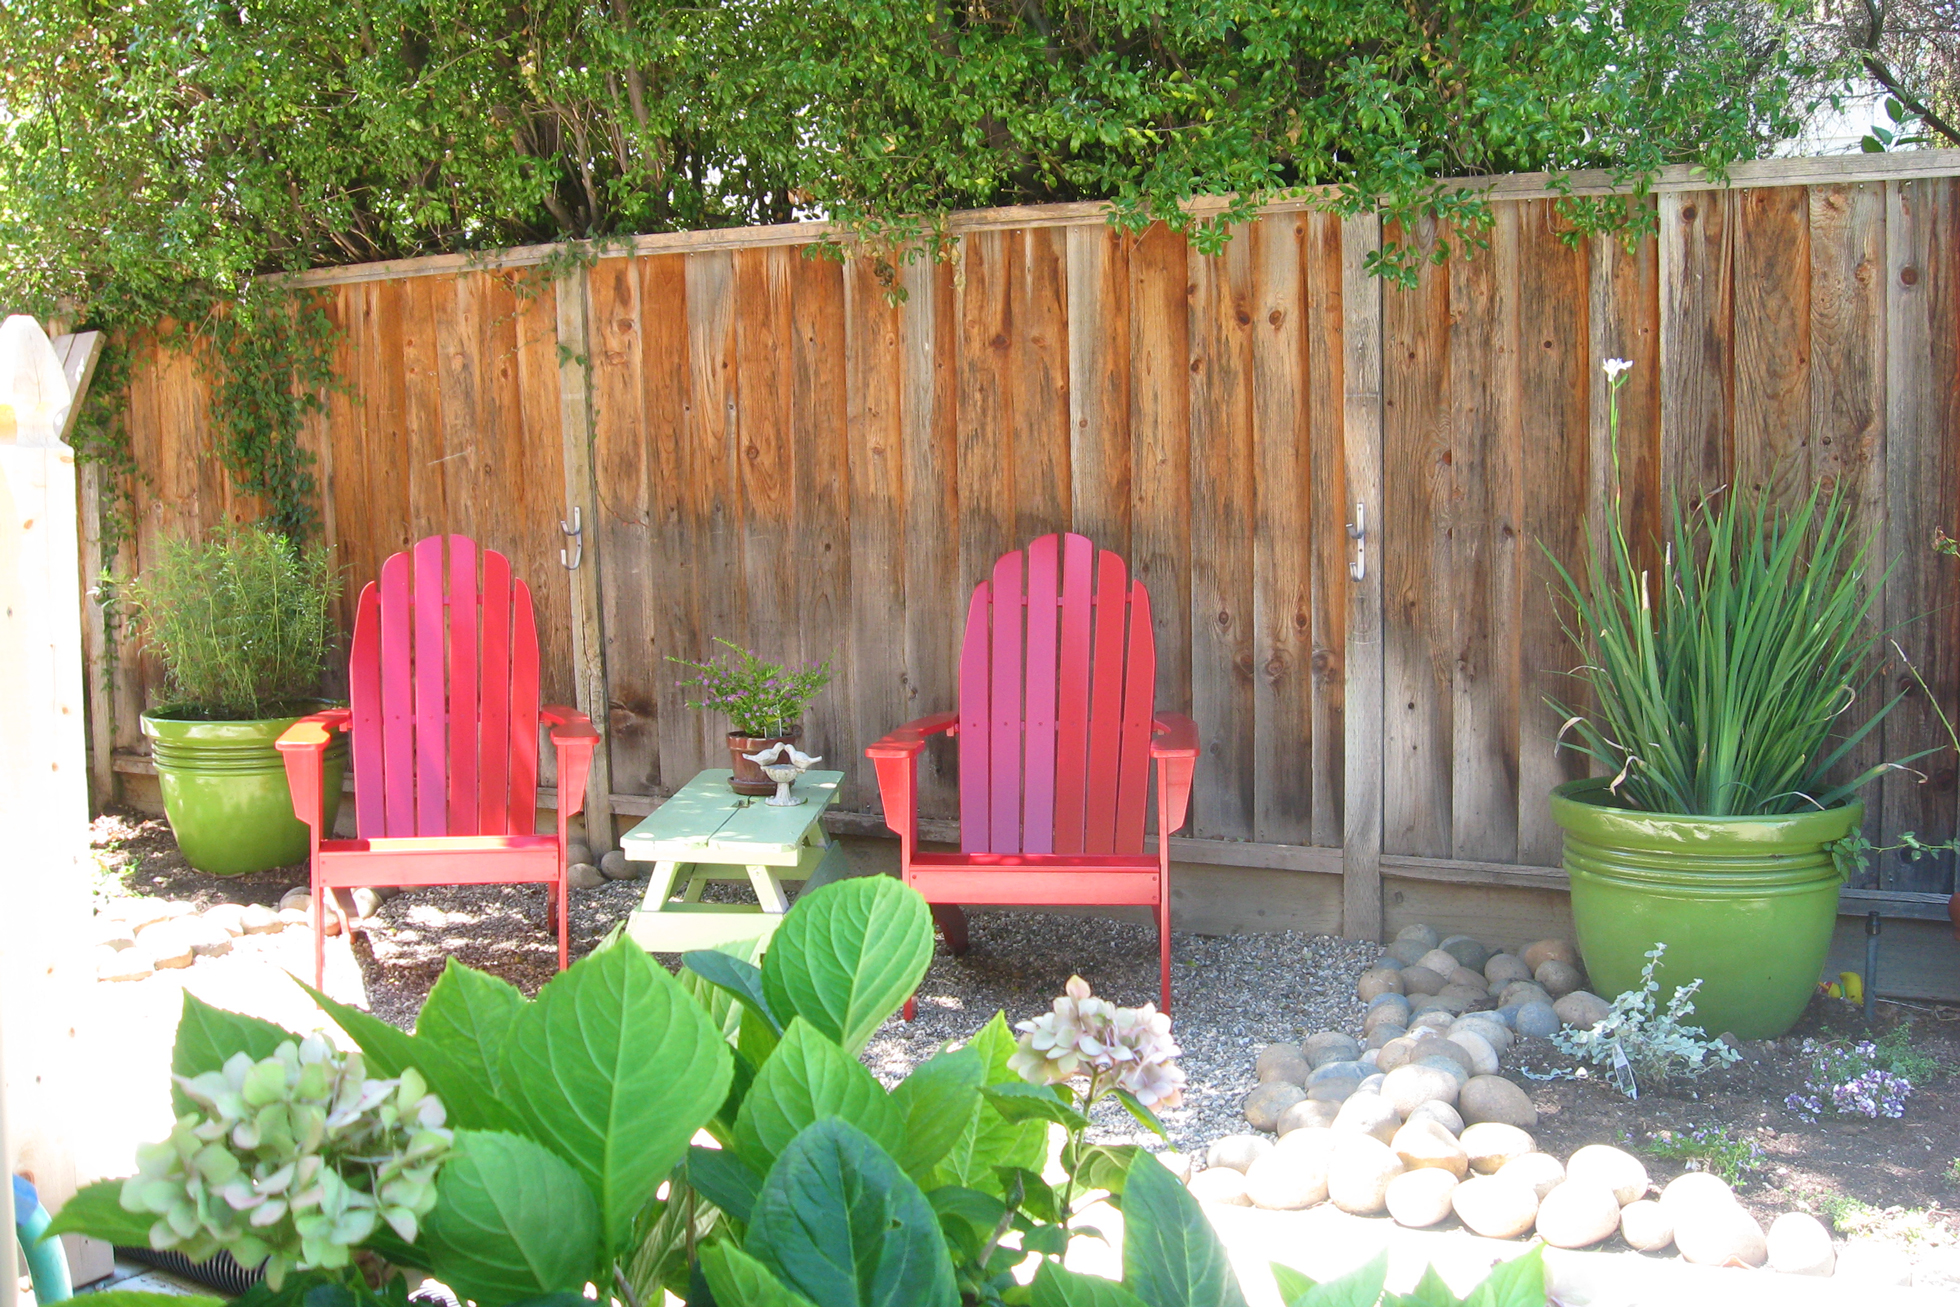 Red Adirondack chairs in a gravel backyard